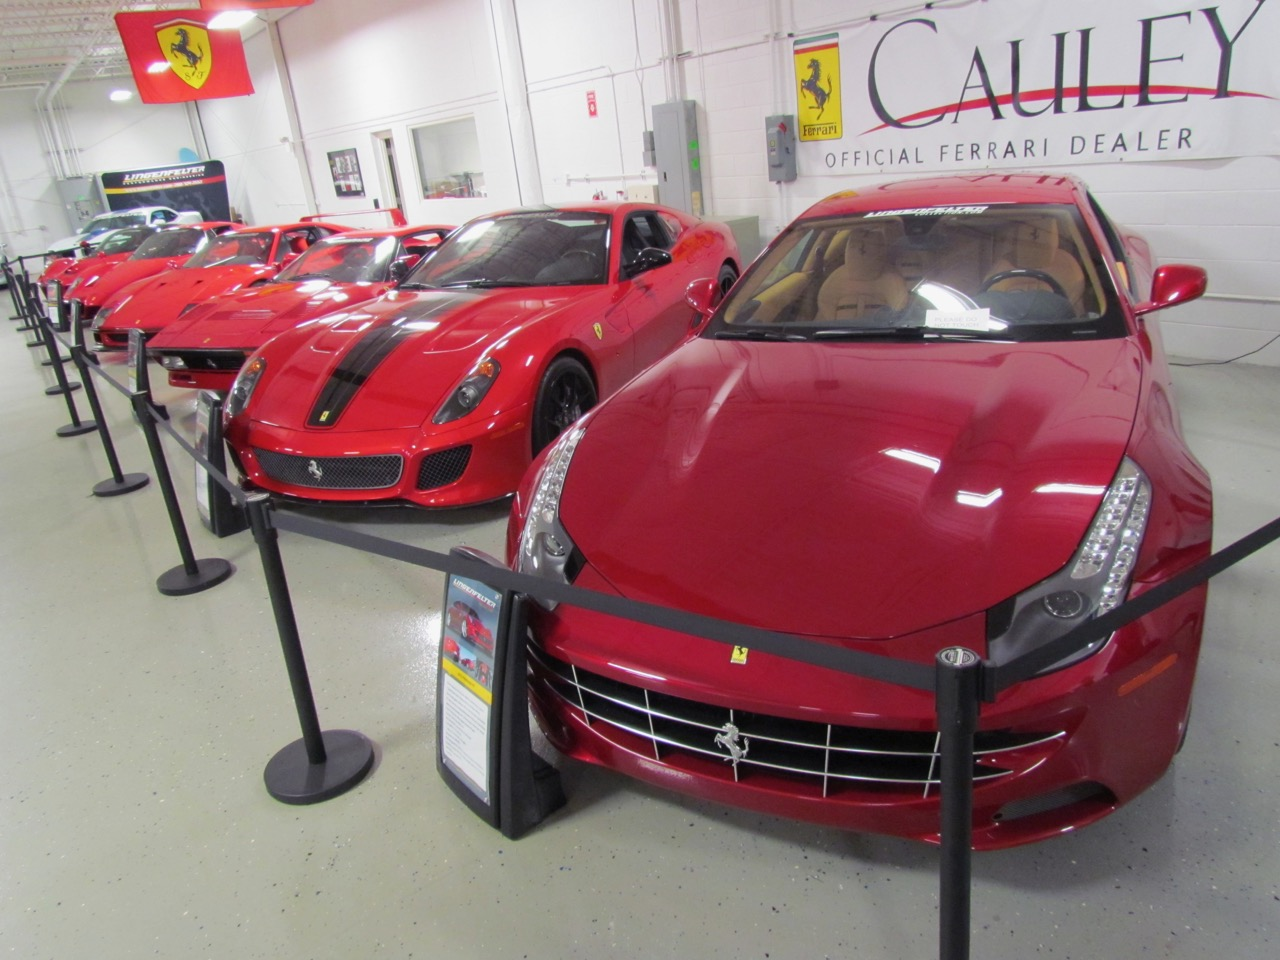 Red exotics are part of the Ken Lingenfelter collection that will be open to raise money for charity | Larry Edsall photos